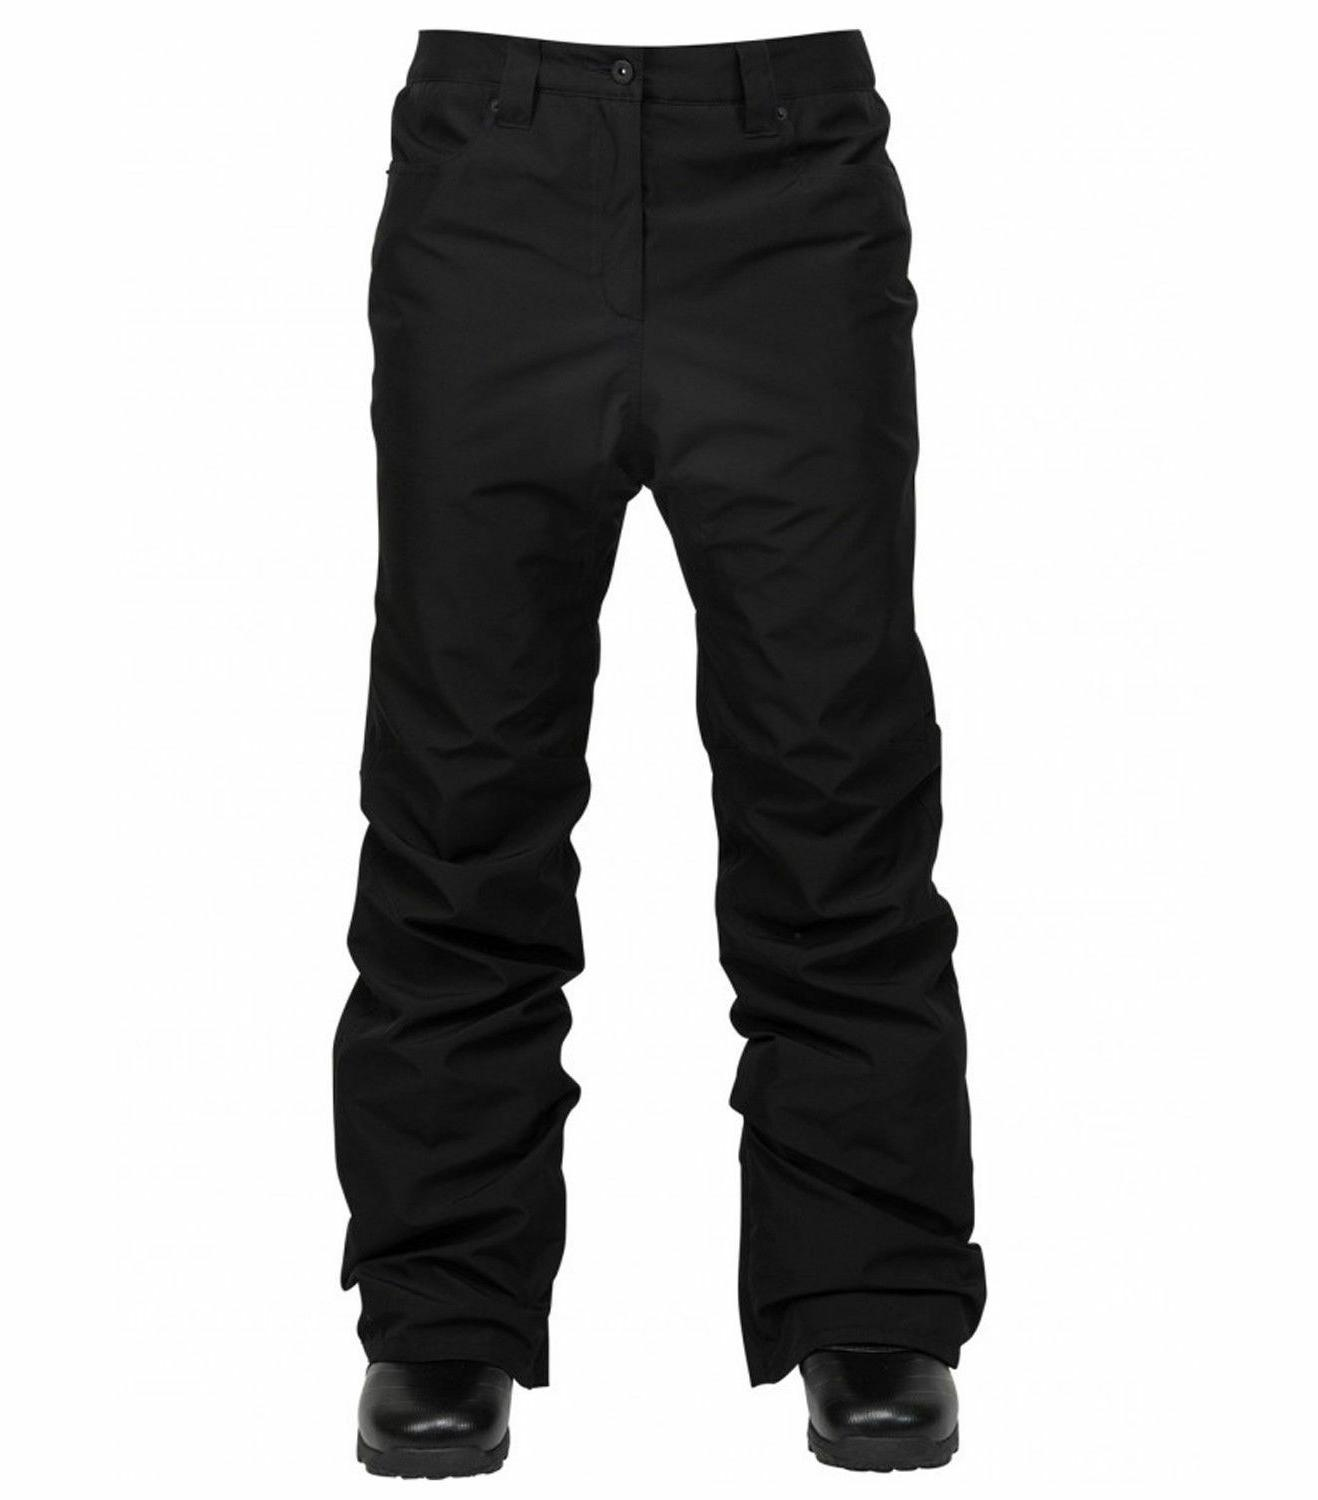 2018 NWT L1 PREMIUM SLIM BASIC SNOW PANT L $200 Black Waterp